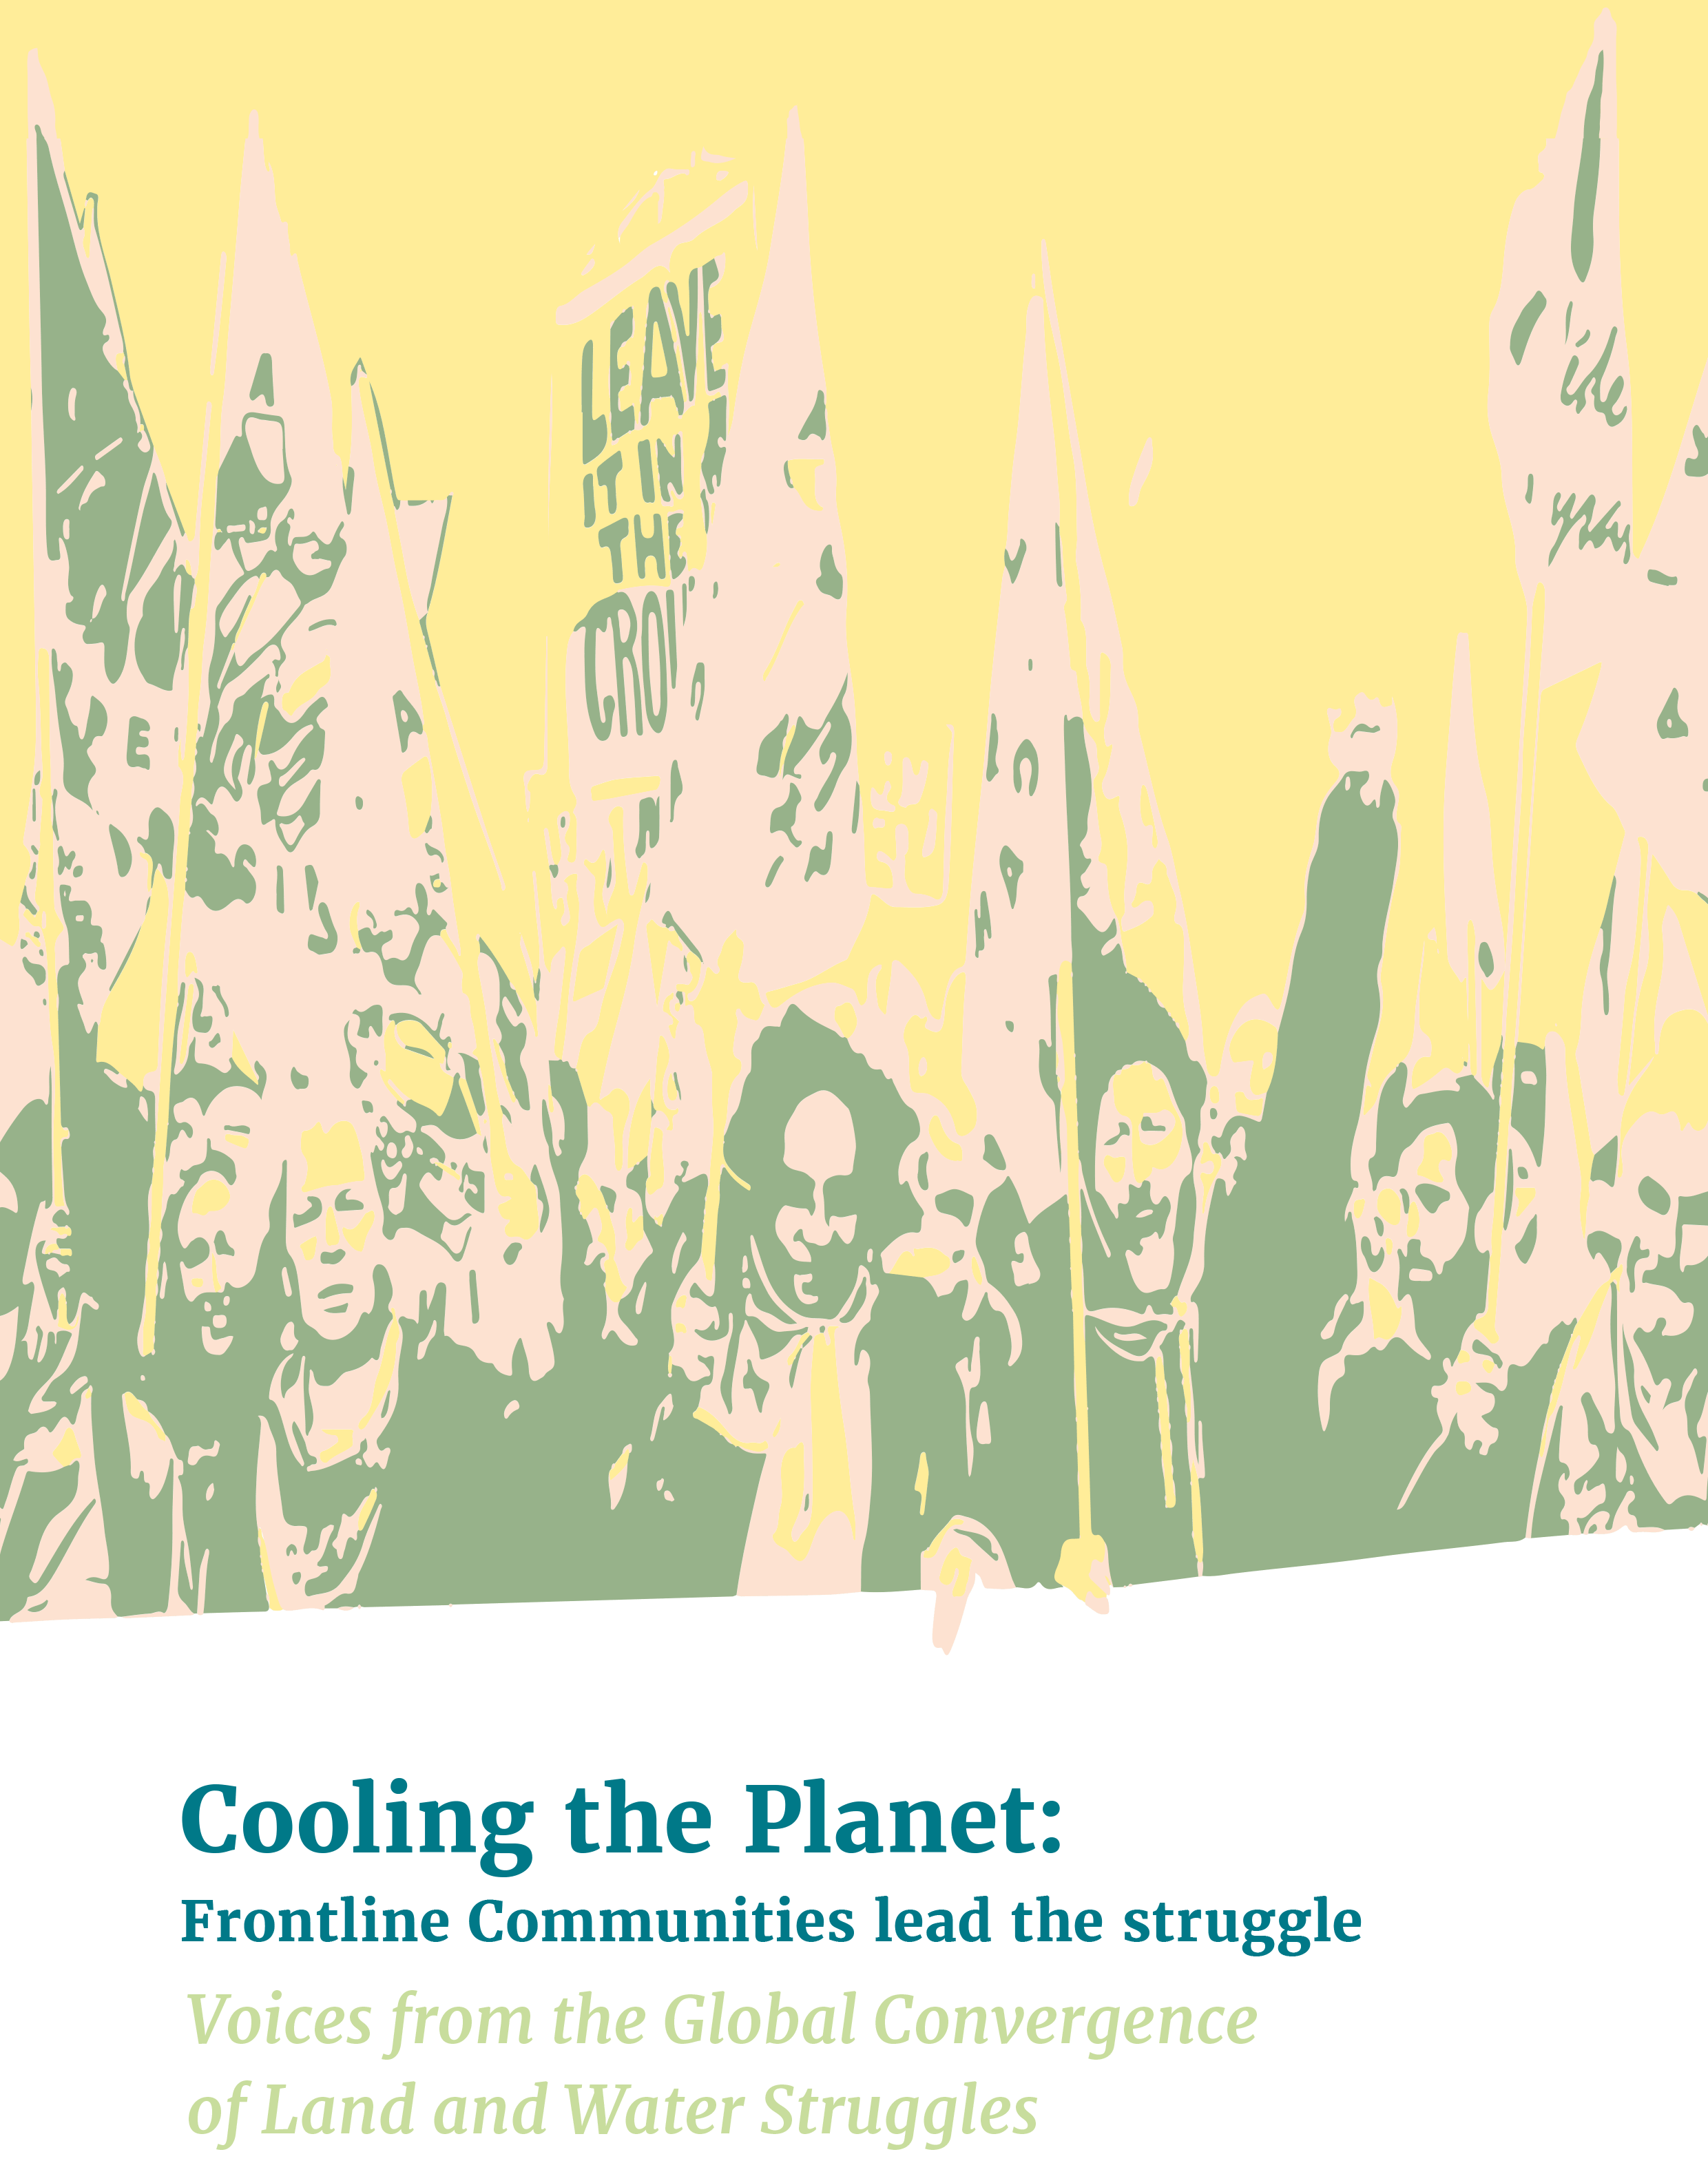 Cooling the Planet: Frontline Communities Lead the Struggle – Voices from the Global Convergence of Land and Water Struggles